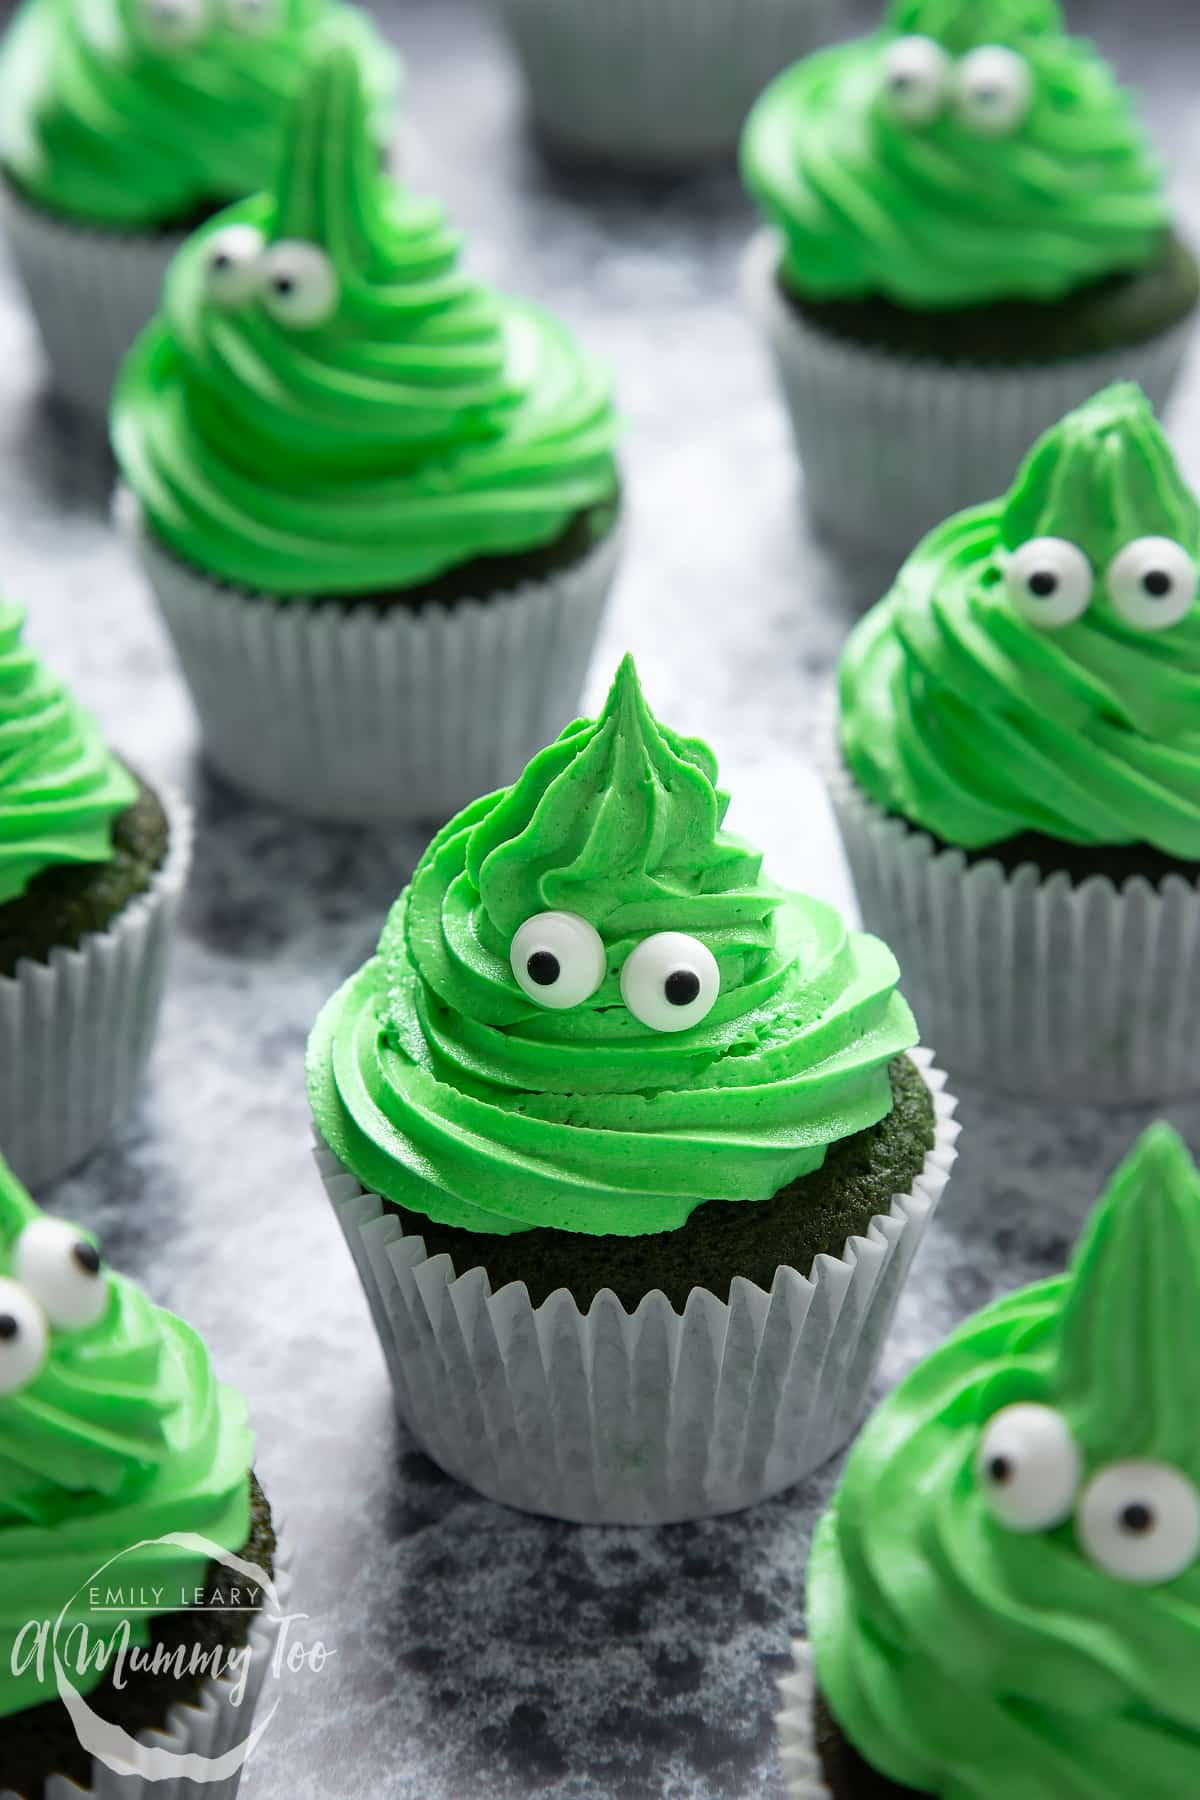 Green monster cakes made with dyed-green chocolate chip cupcakes topped with green peppermint frosting with added candy eyes.